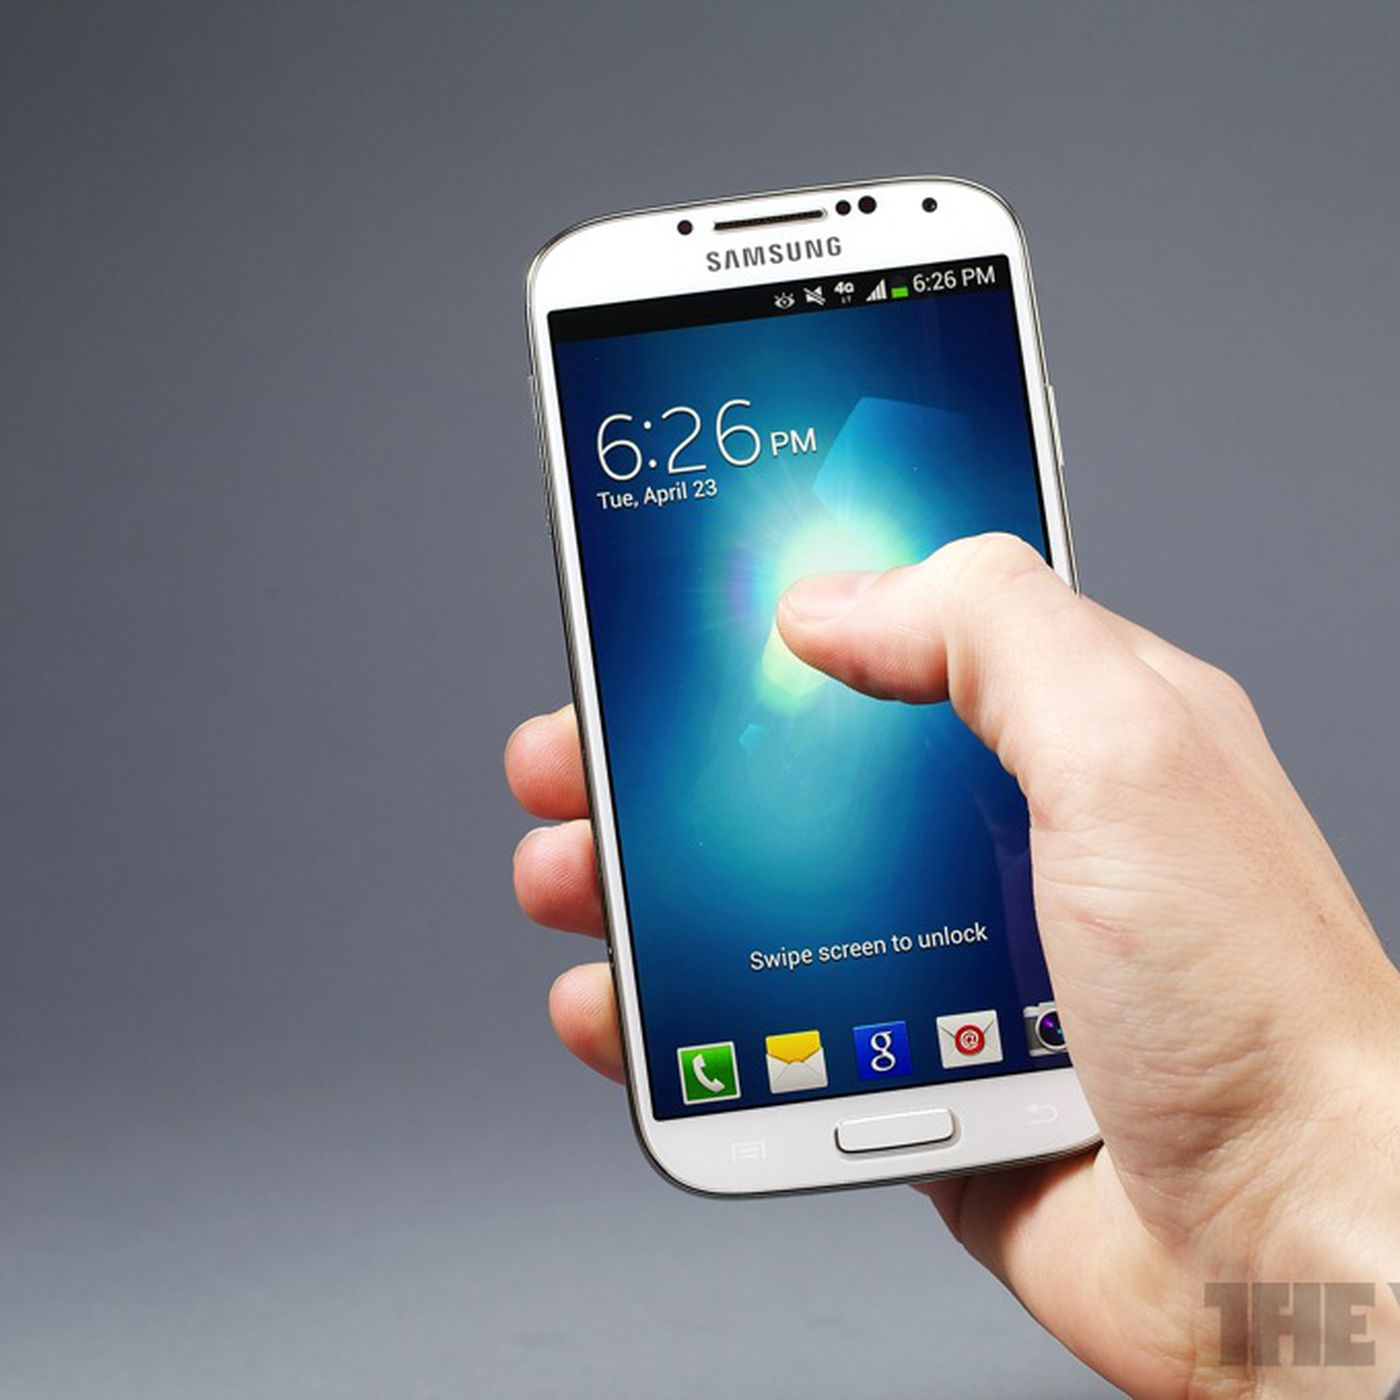 Samsung CEO claims Galaxy S4 will hit 10 million sales in under a